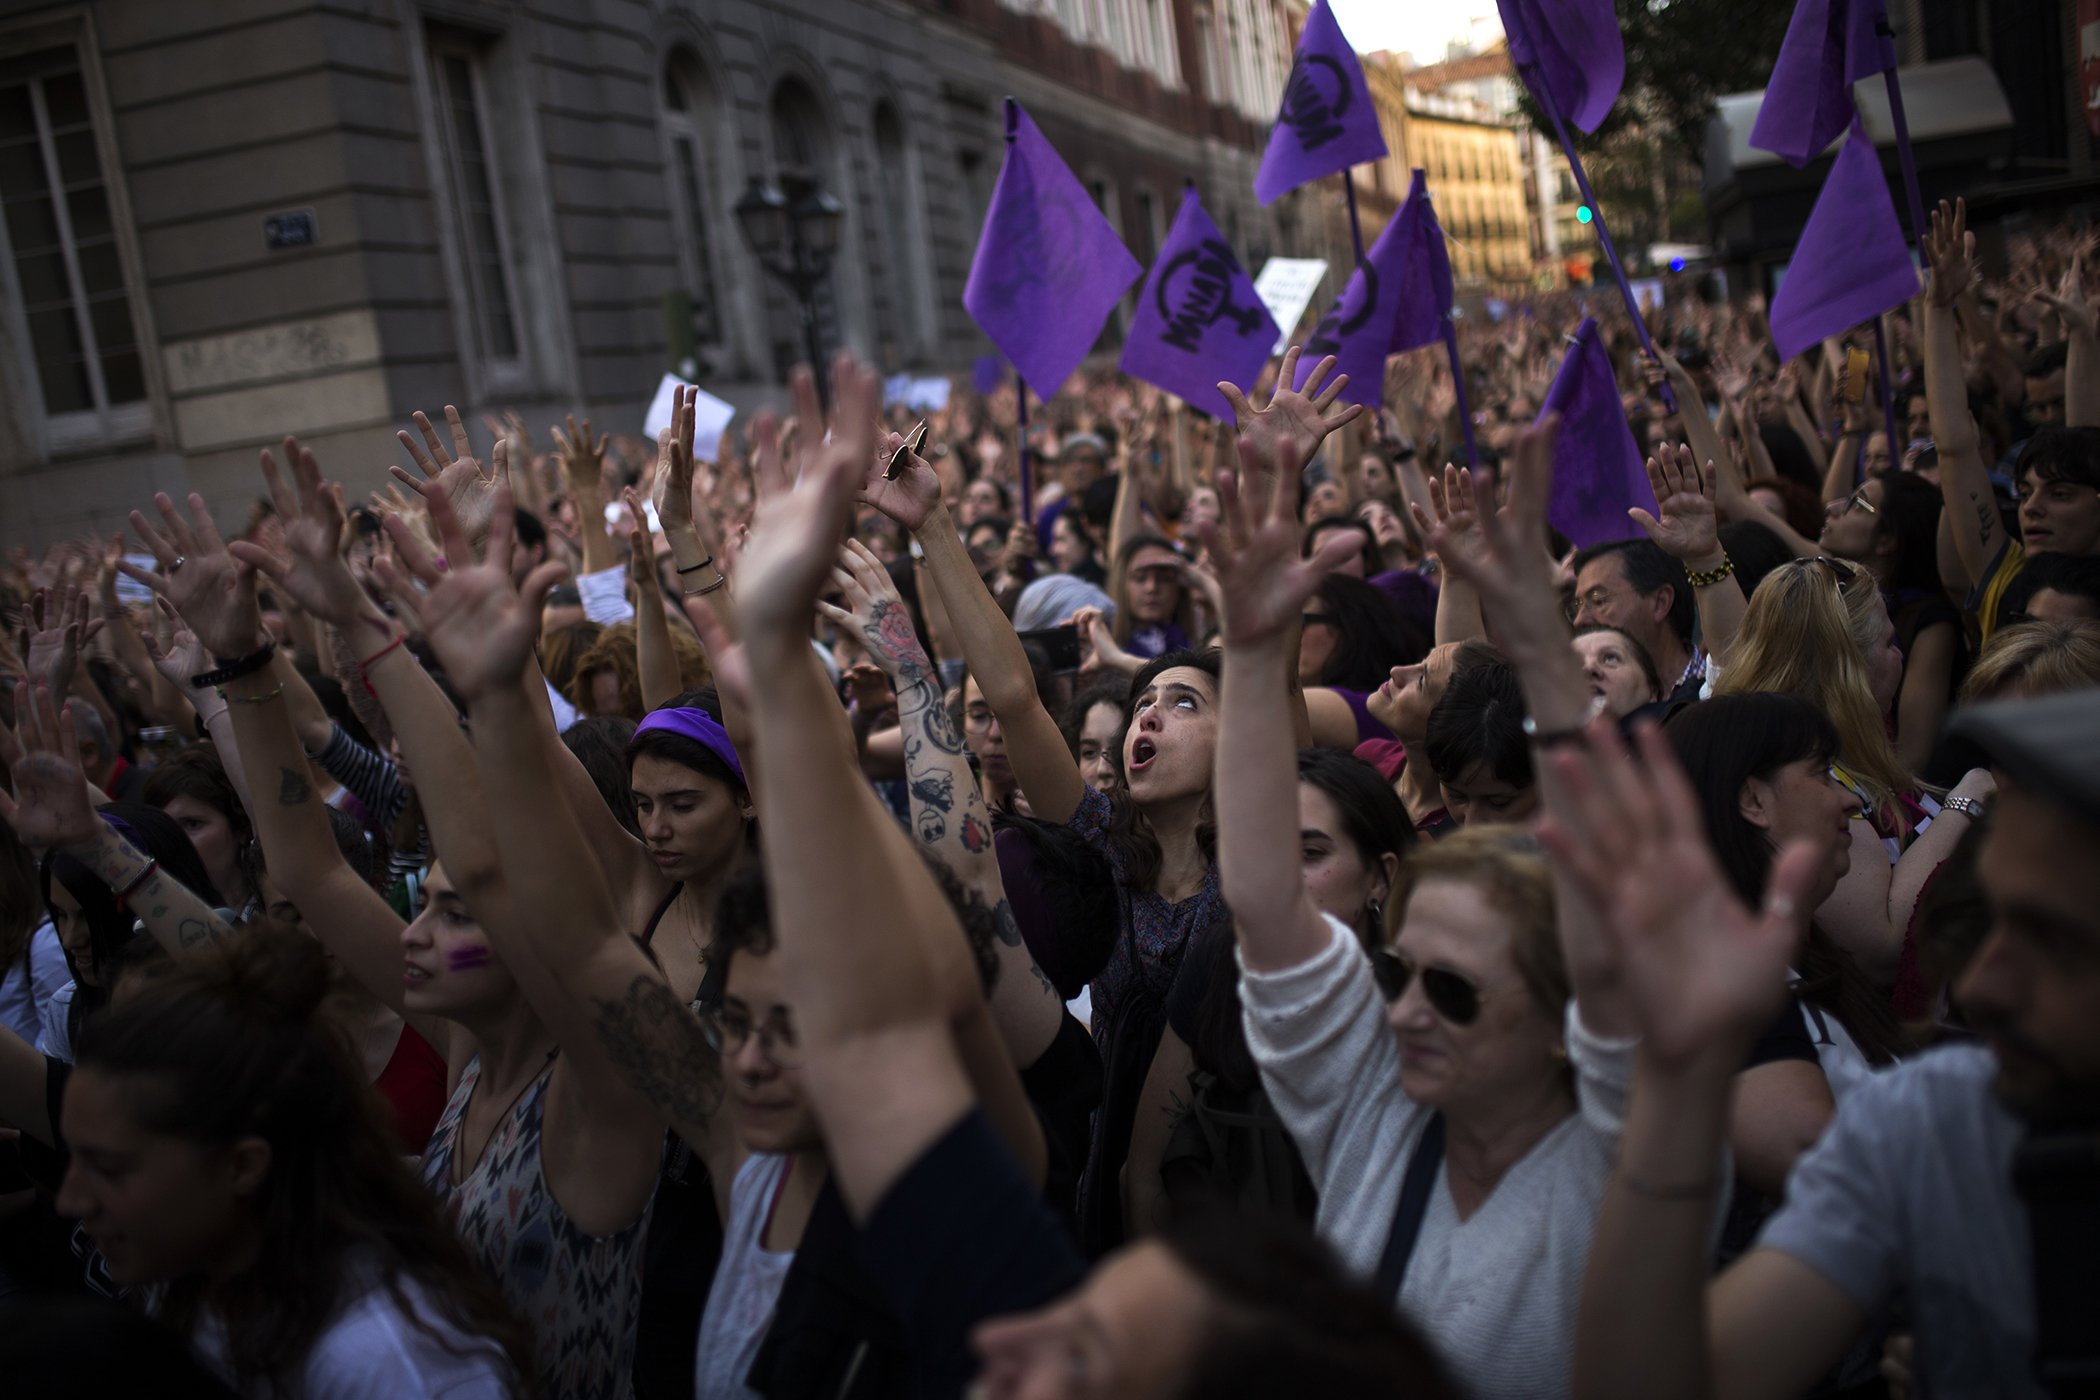 Spain-Sexual-Violence-Protests-Full-Frame.jpg